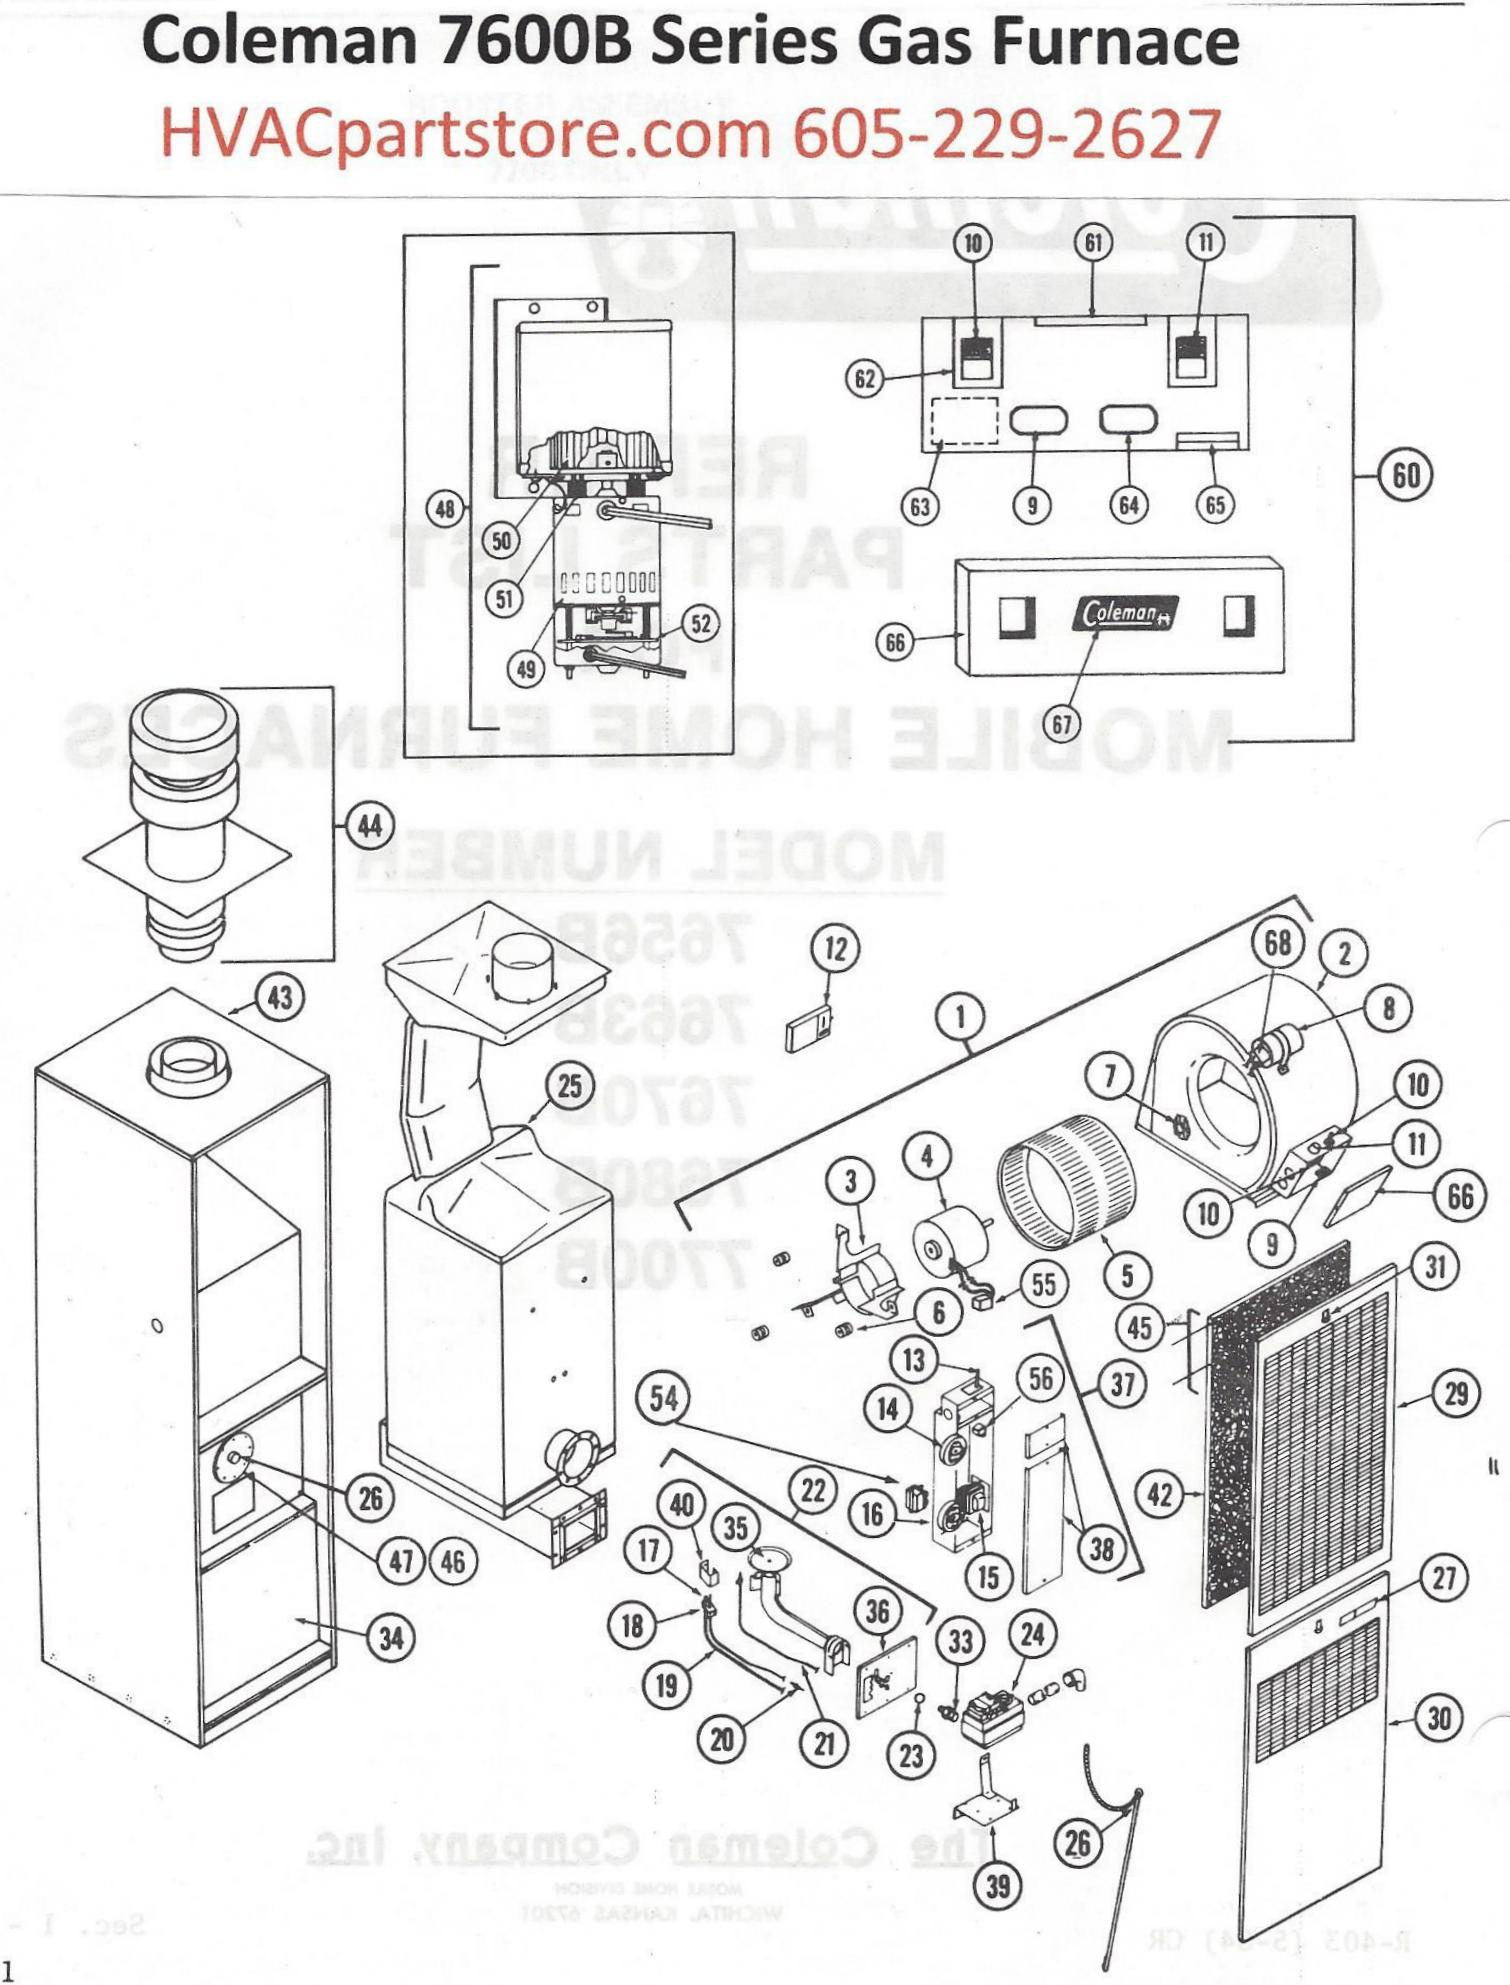 7656b856 coleman gas furnace parts hvacpartstore click here to view a manual for the coleman 7656b856 which includes wiring diagrams asfbconference2016